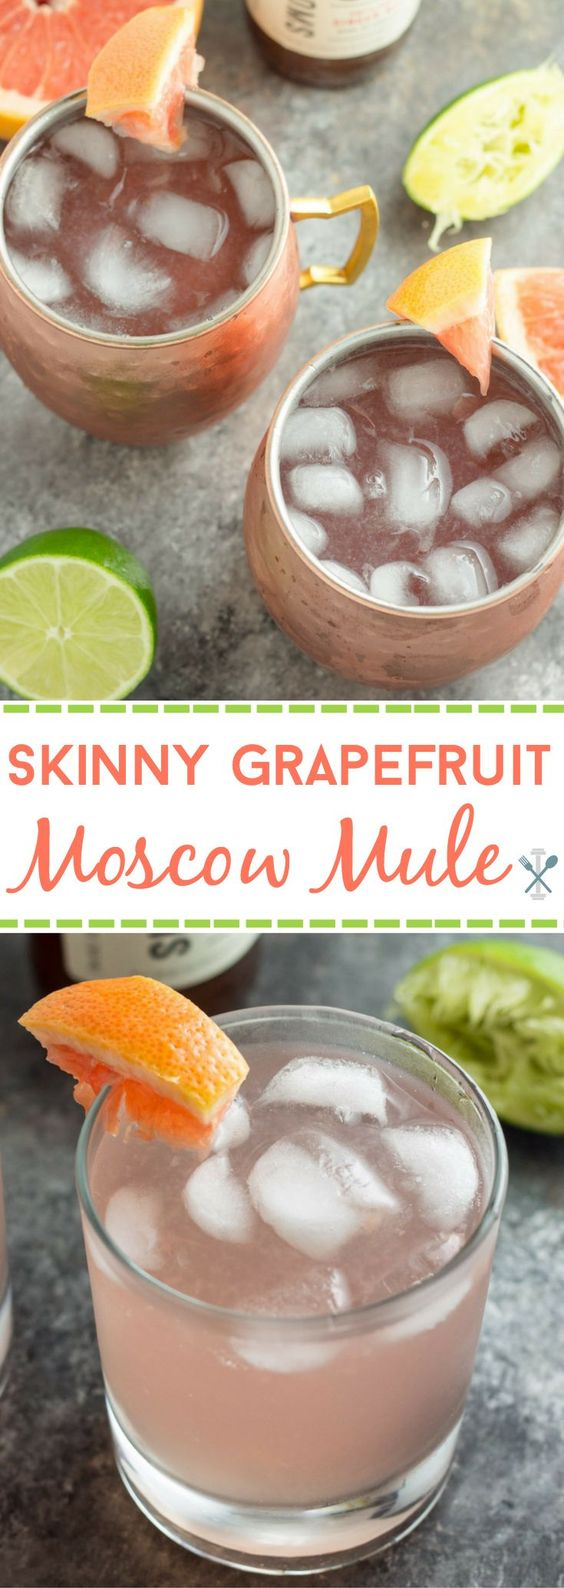 MUST DRINK: I am obsessed with anything grapefruit and these skinny grapefruit margaritas look amazing! Get the recipe here.